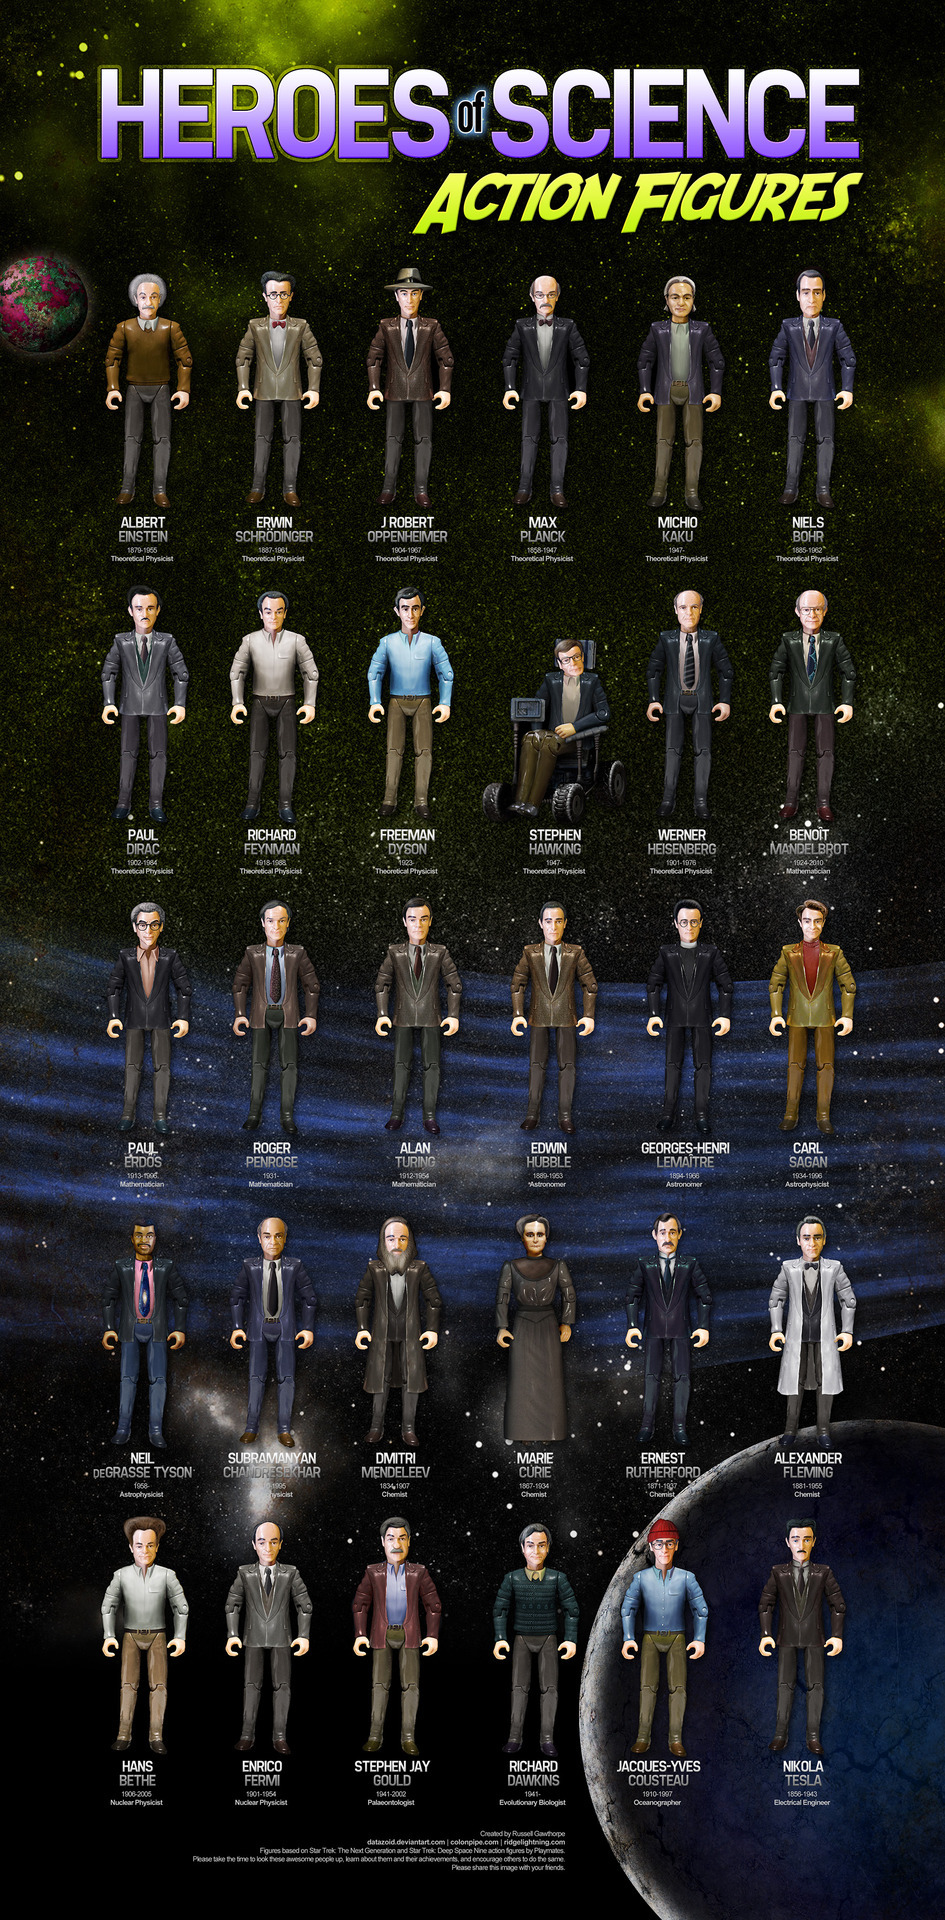 Heroes of Science Action Figures!! These heroes of modern science, modeled off of old Star Trek action figures, are AWESOME. Sadly, these are digitally painted, so we can only hold them on our computer screens, and not in our hands. I know there are a ton of other scientists who could be added to the list (especially more women), but I'm not the one who had to spend hours rendering these, so I'll just bask in the science-y glory as it stands. Who would you add? (visit *datazoid on deviantART for a high resolution image and to find out how they were made)